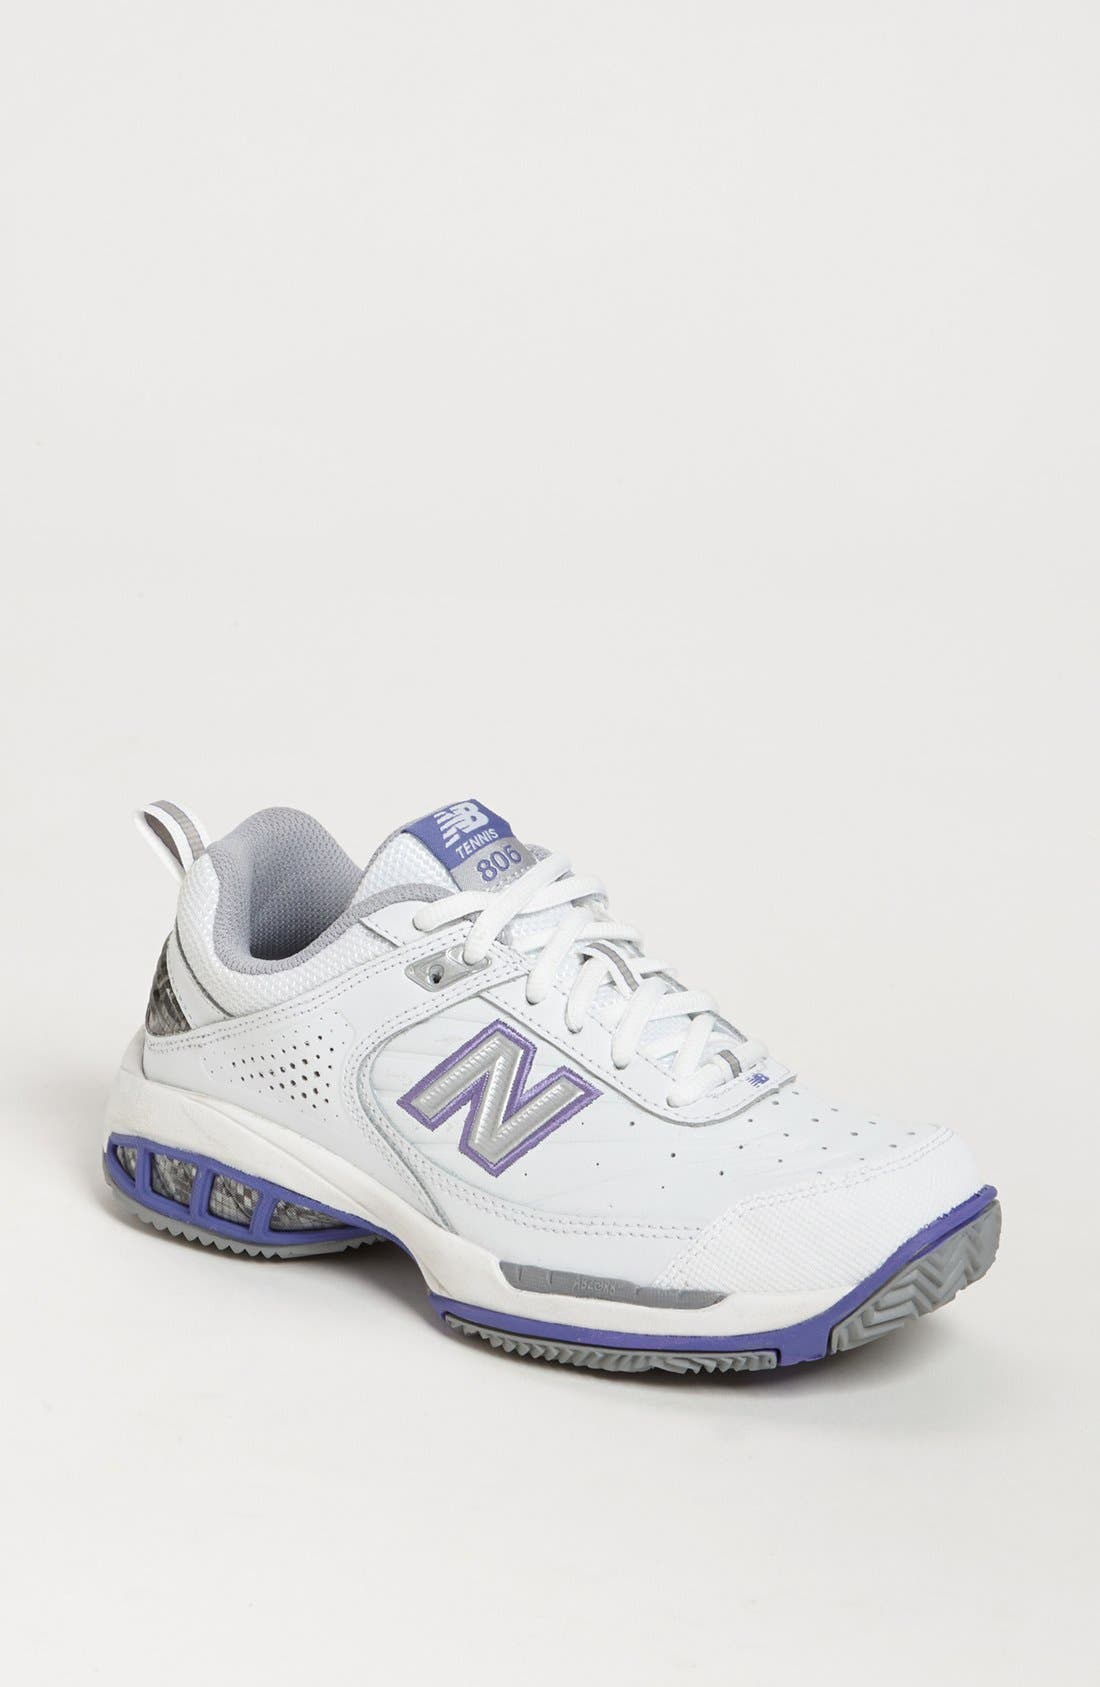 Alternate Image 1 Selected - New Balance '806' Tennis Shoe (Women)